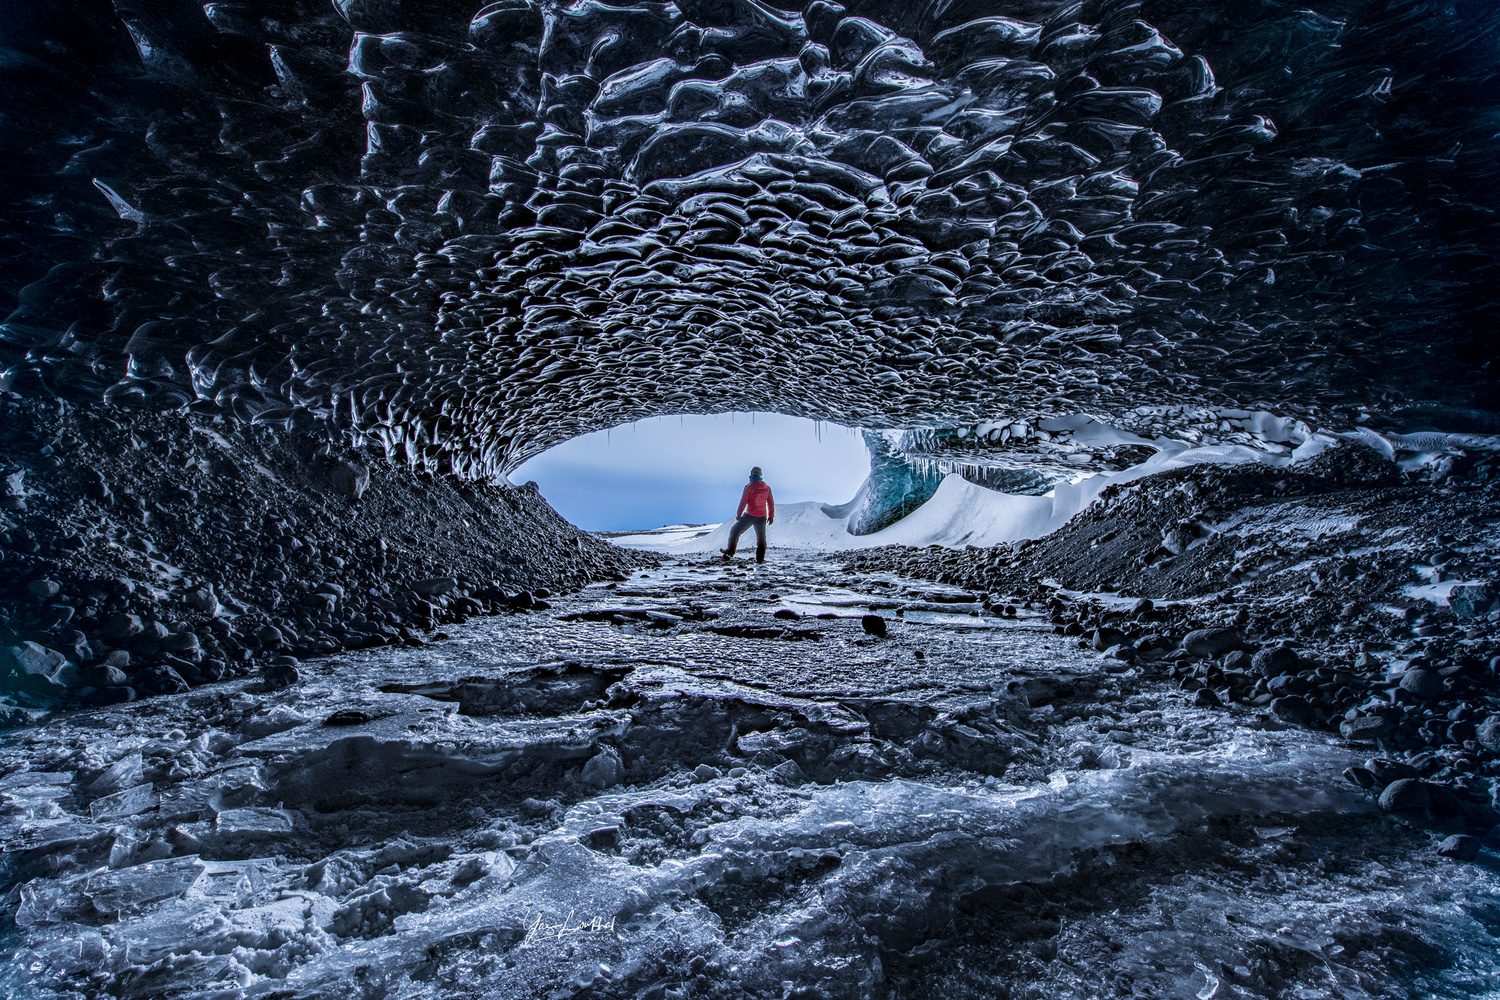 Ice cave of Iceland by Yaz Loukhal